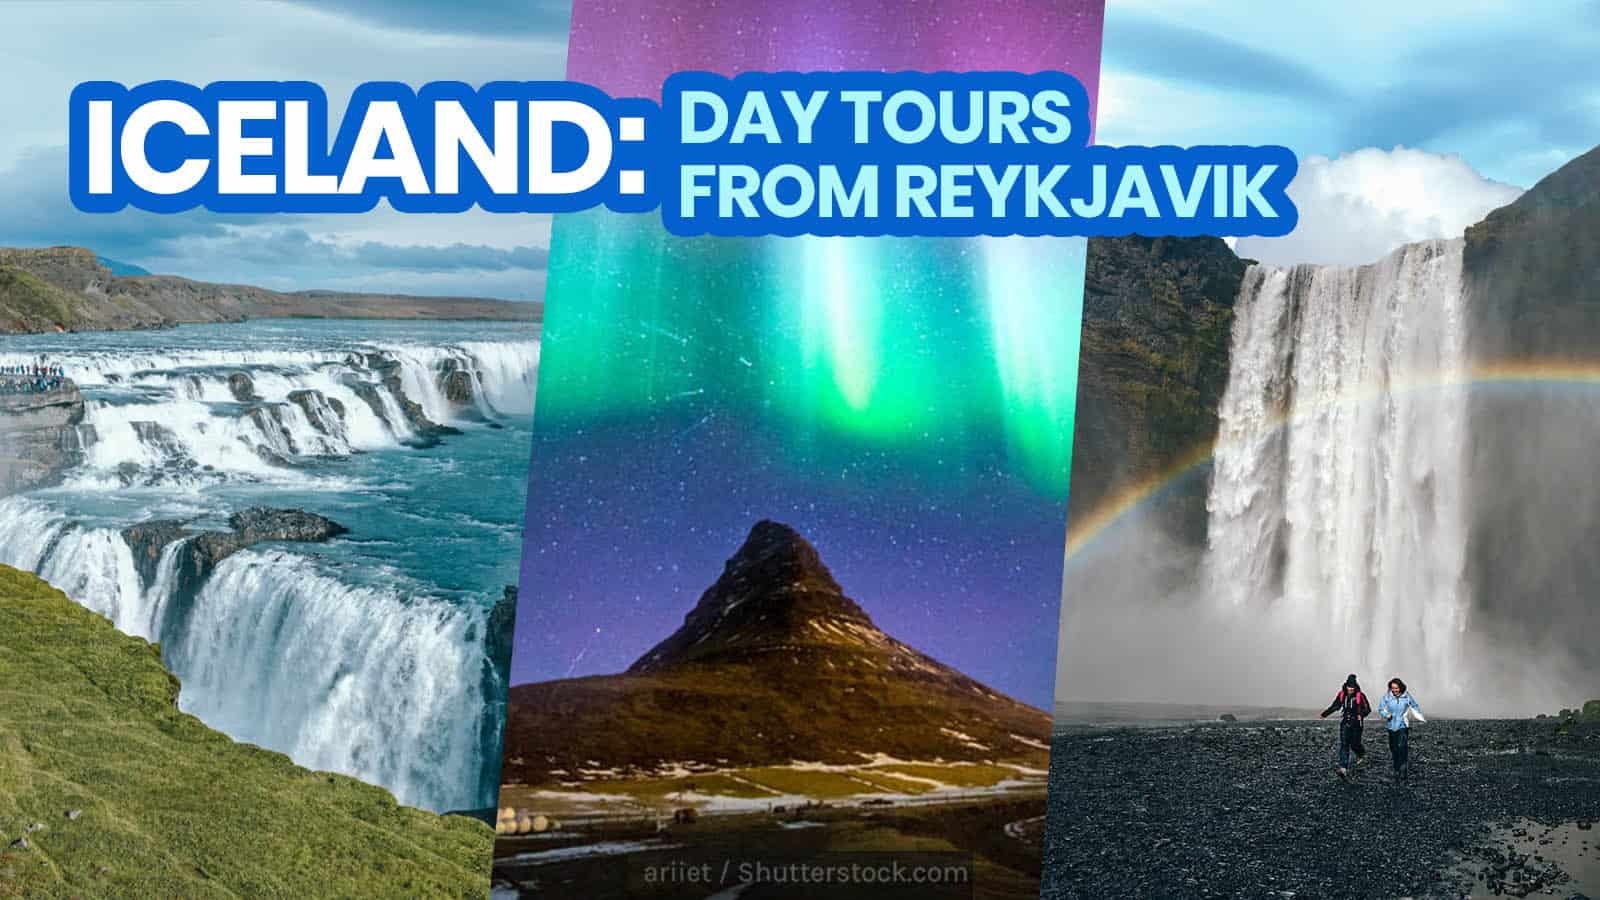 15 DAY TOURS FROM REYKJAVIK: Top Things to Do in Iceland